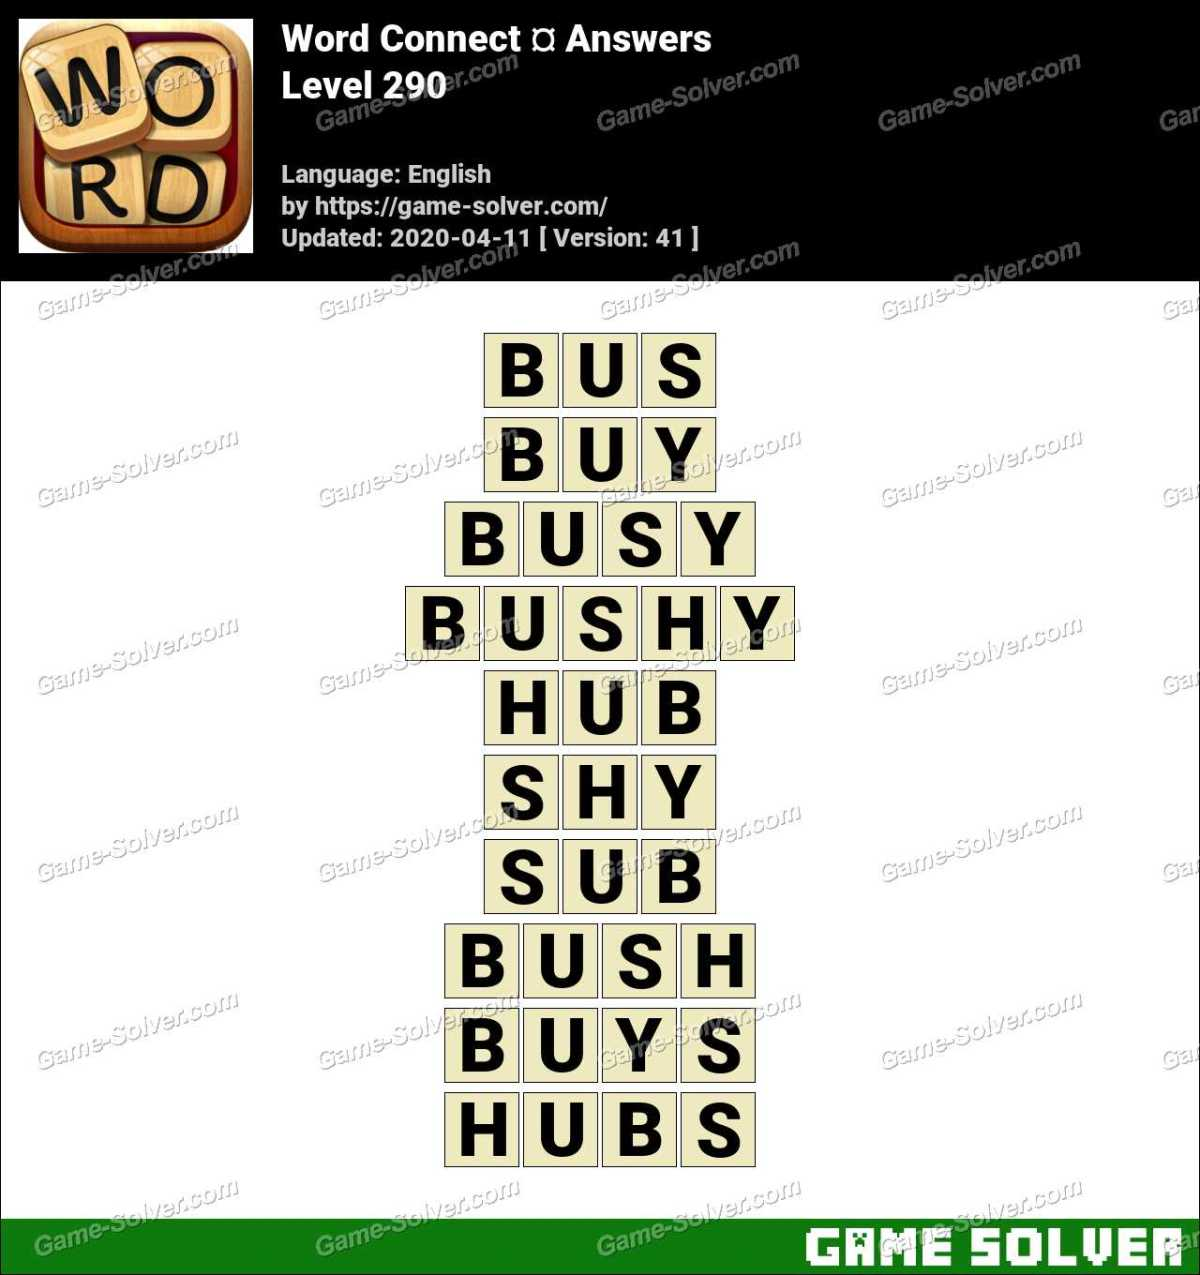 Word Connect Level 290 Answers